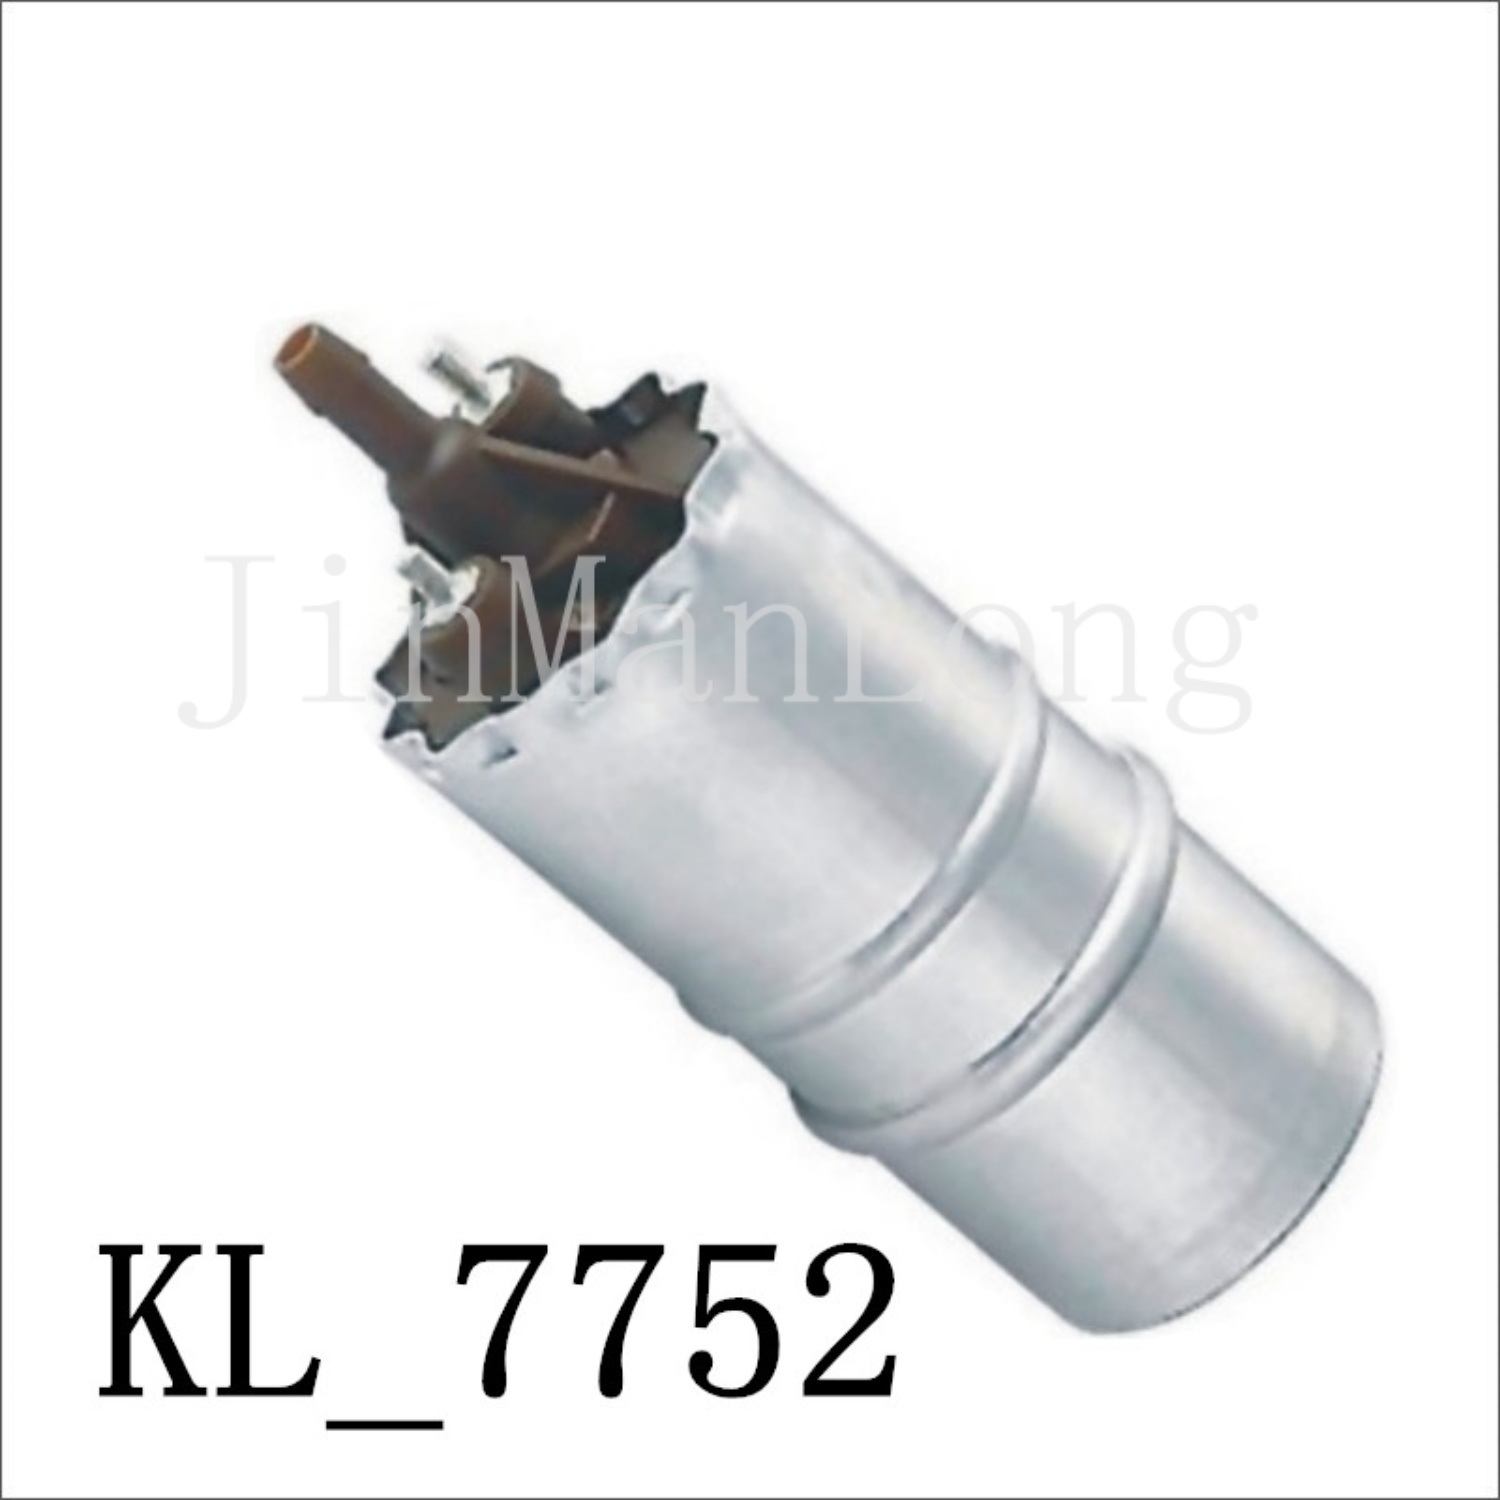 Auto Spare Parts Electric Fuel Pump for FIAT/Lancia/Alfa (0580464996) with Kl-7752